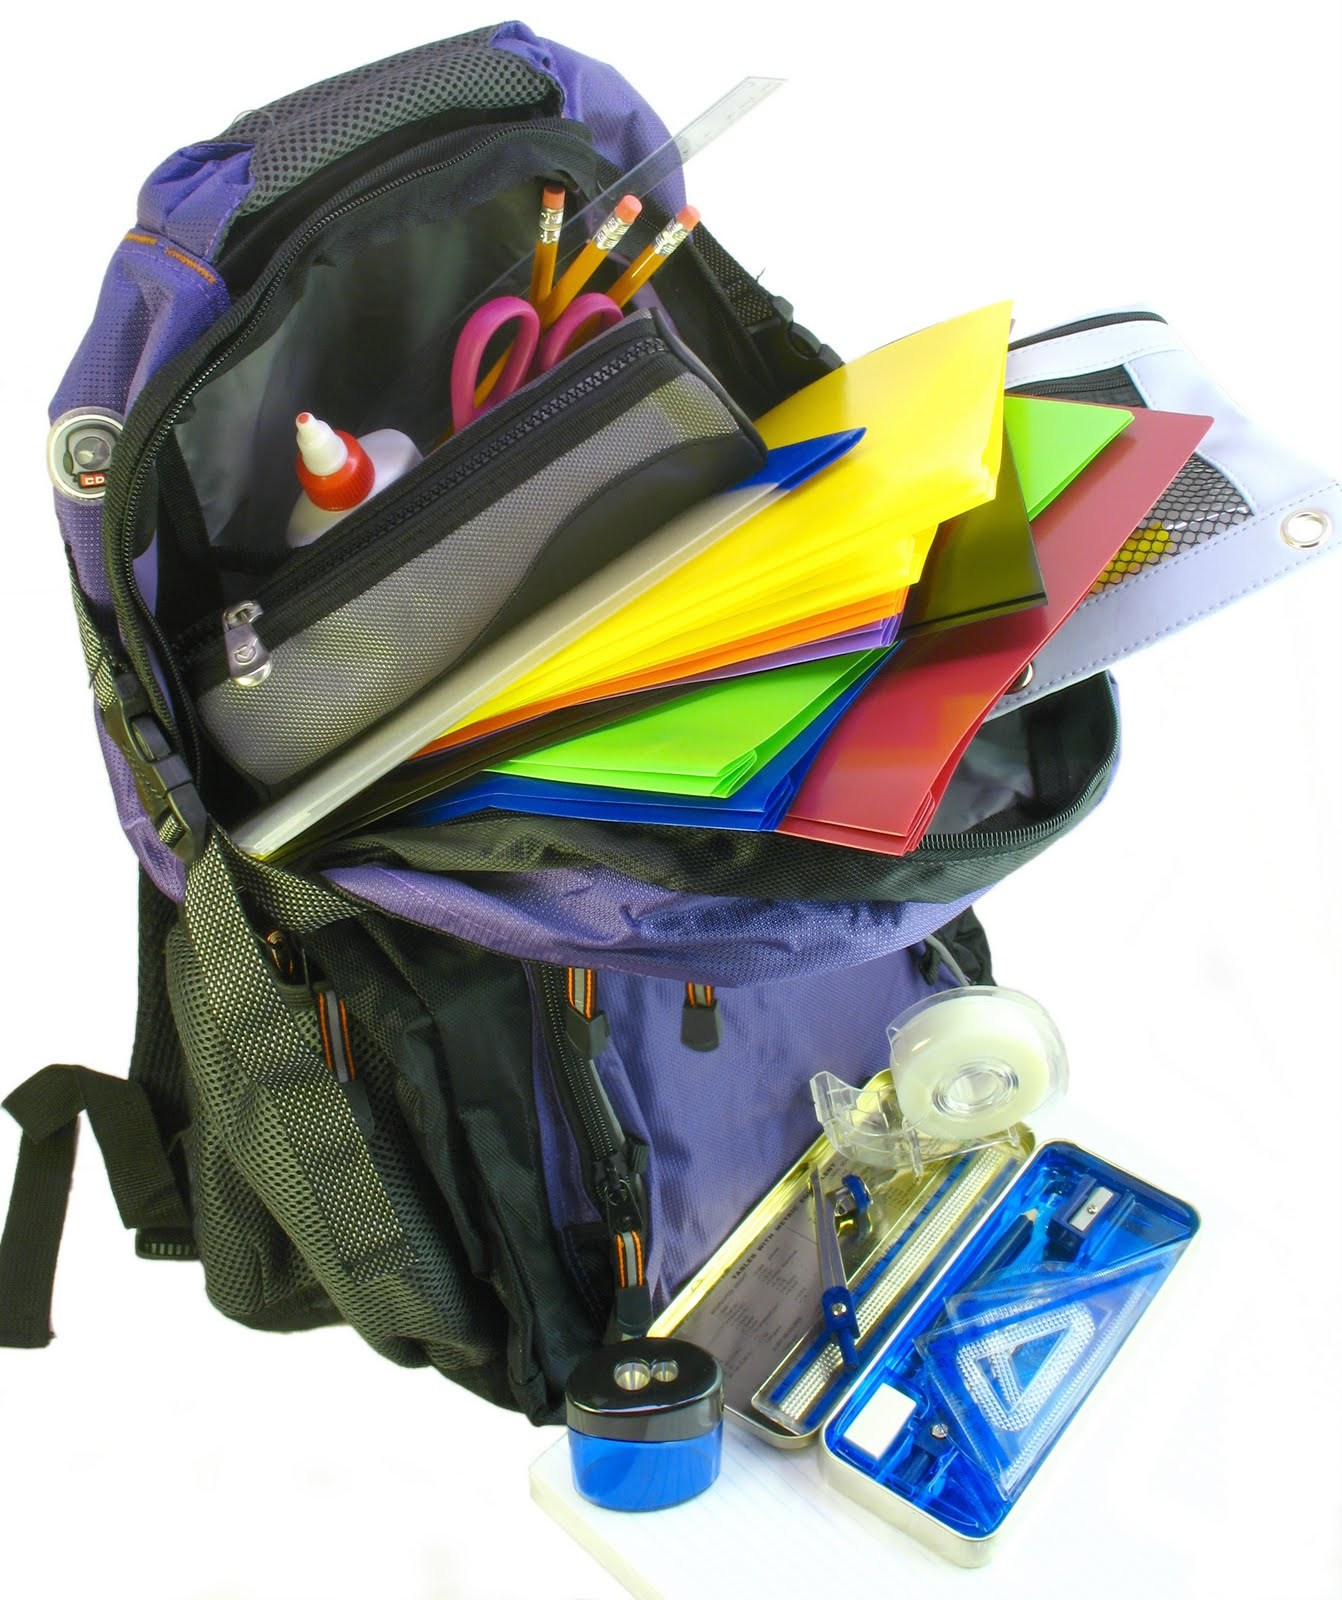 Messy backpack clipart banner freeuse Messy backpack clipart 6 » Clipart Portal banner freeuse